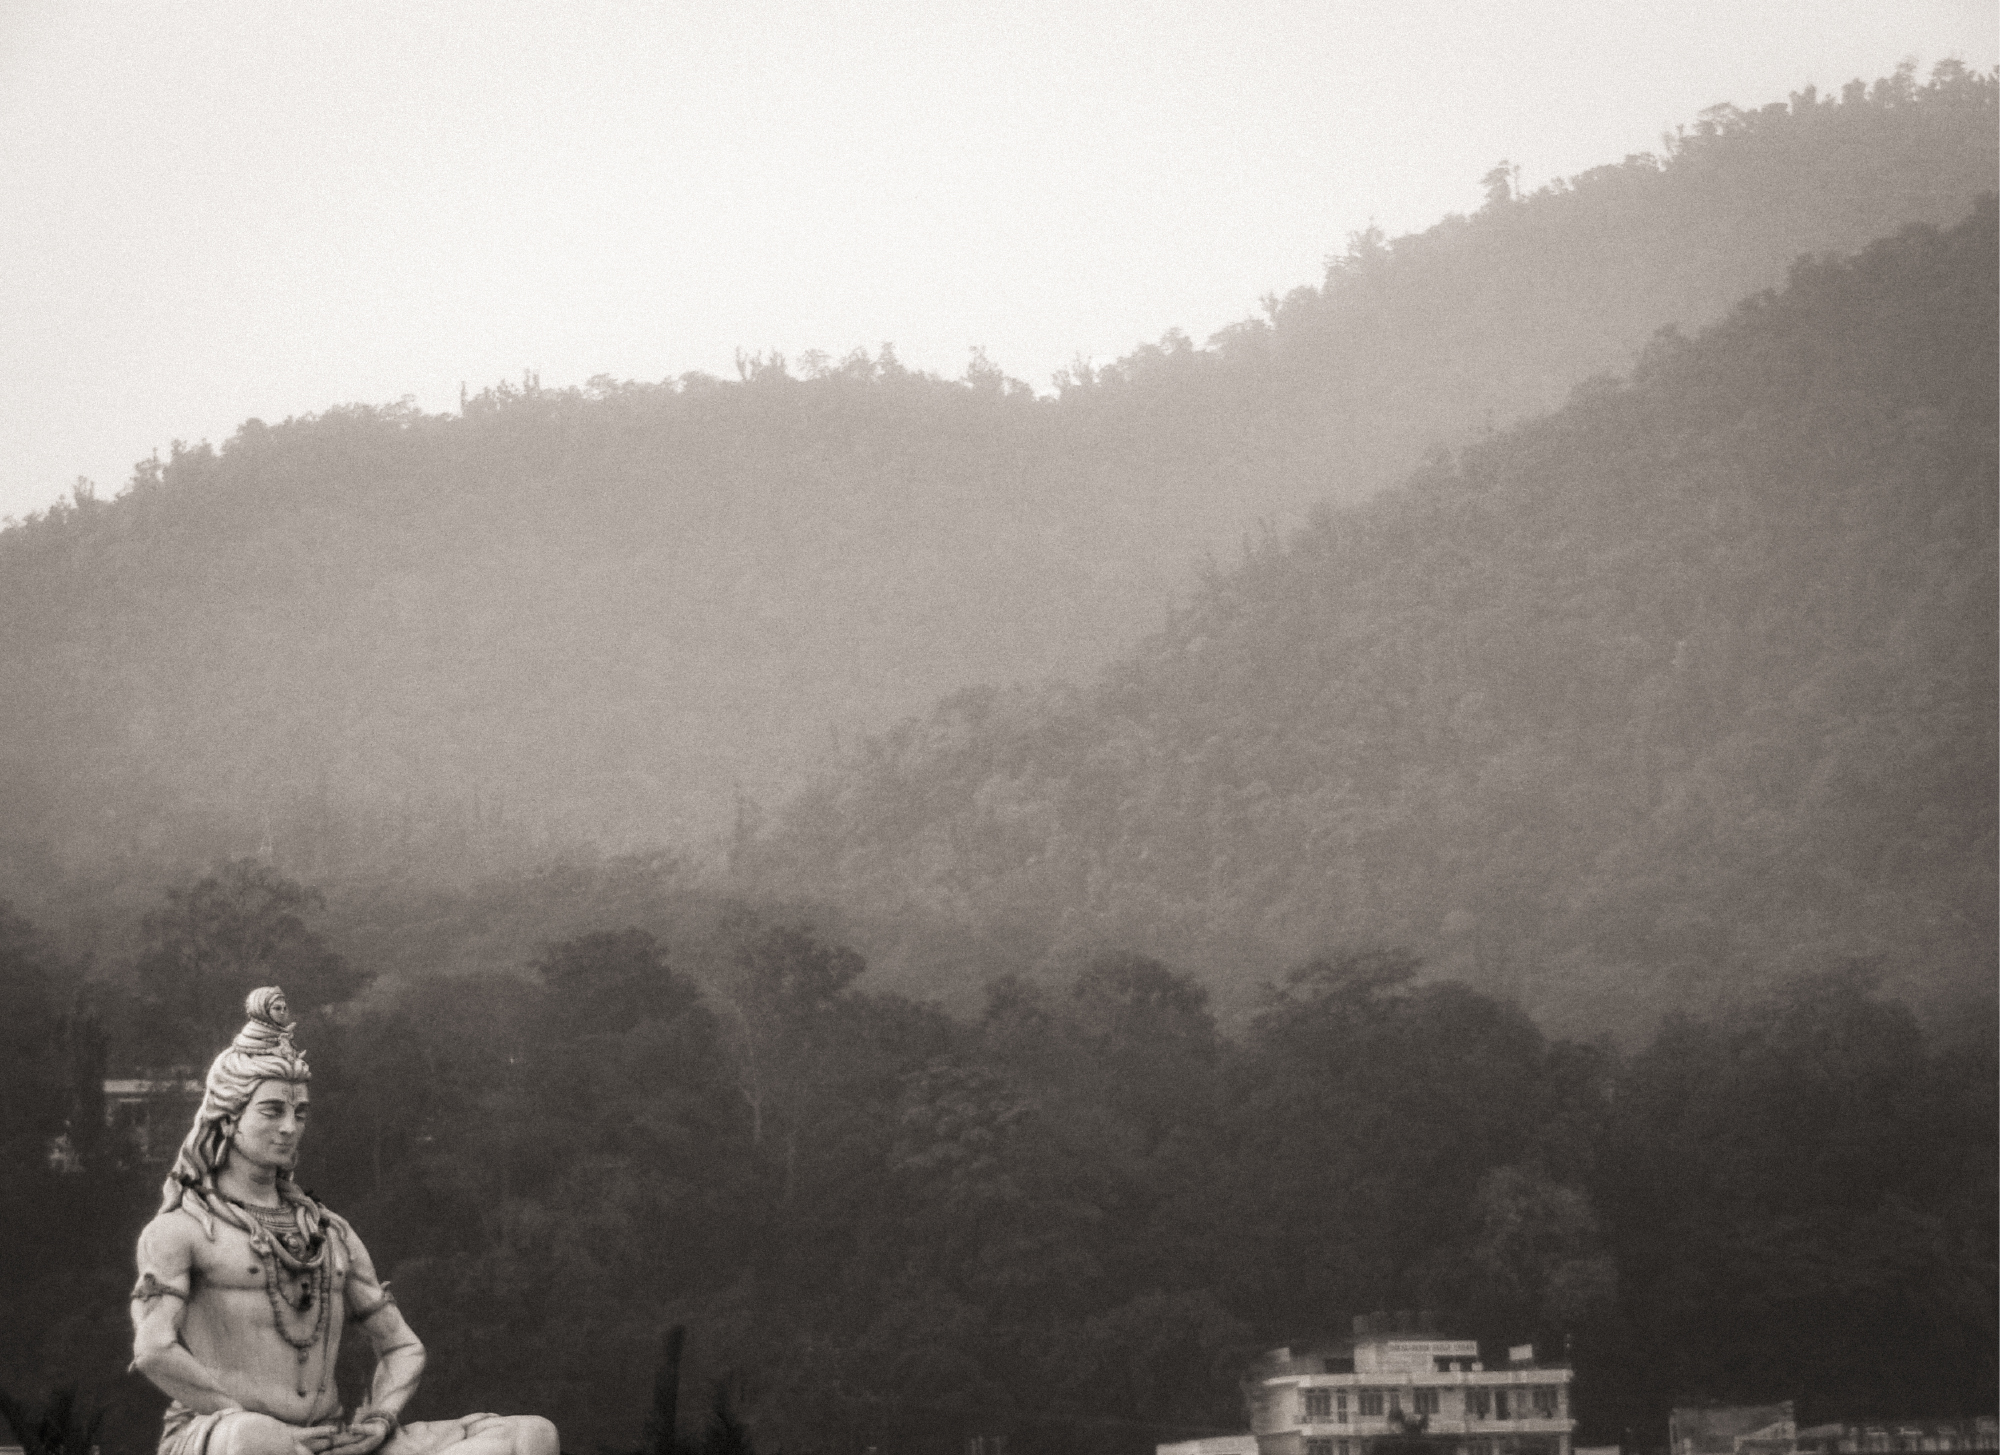 Black and white photograph of a Shiva Statue with tall mountains in the background. Taken in Rishikesh, India